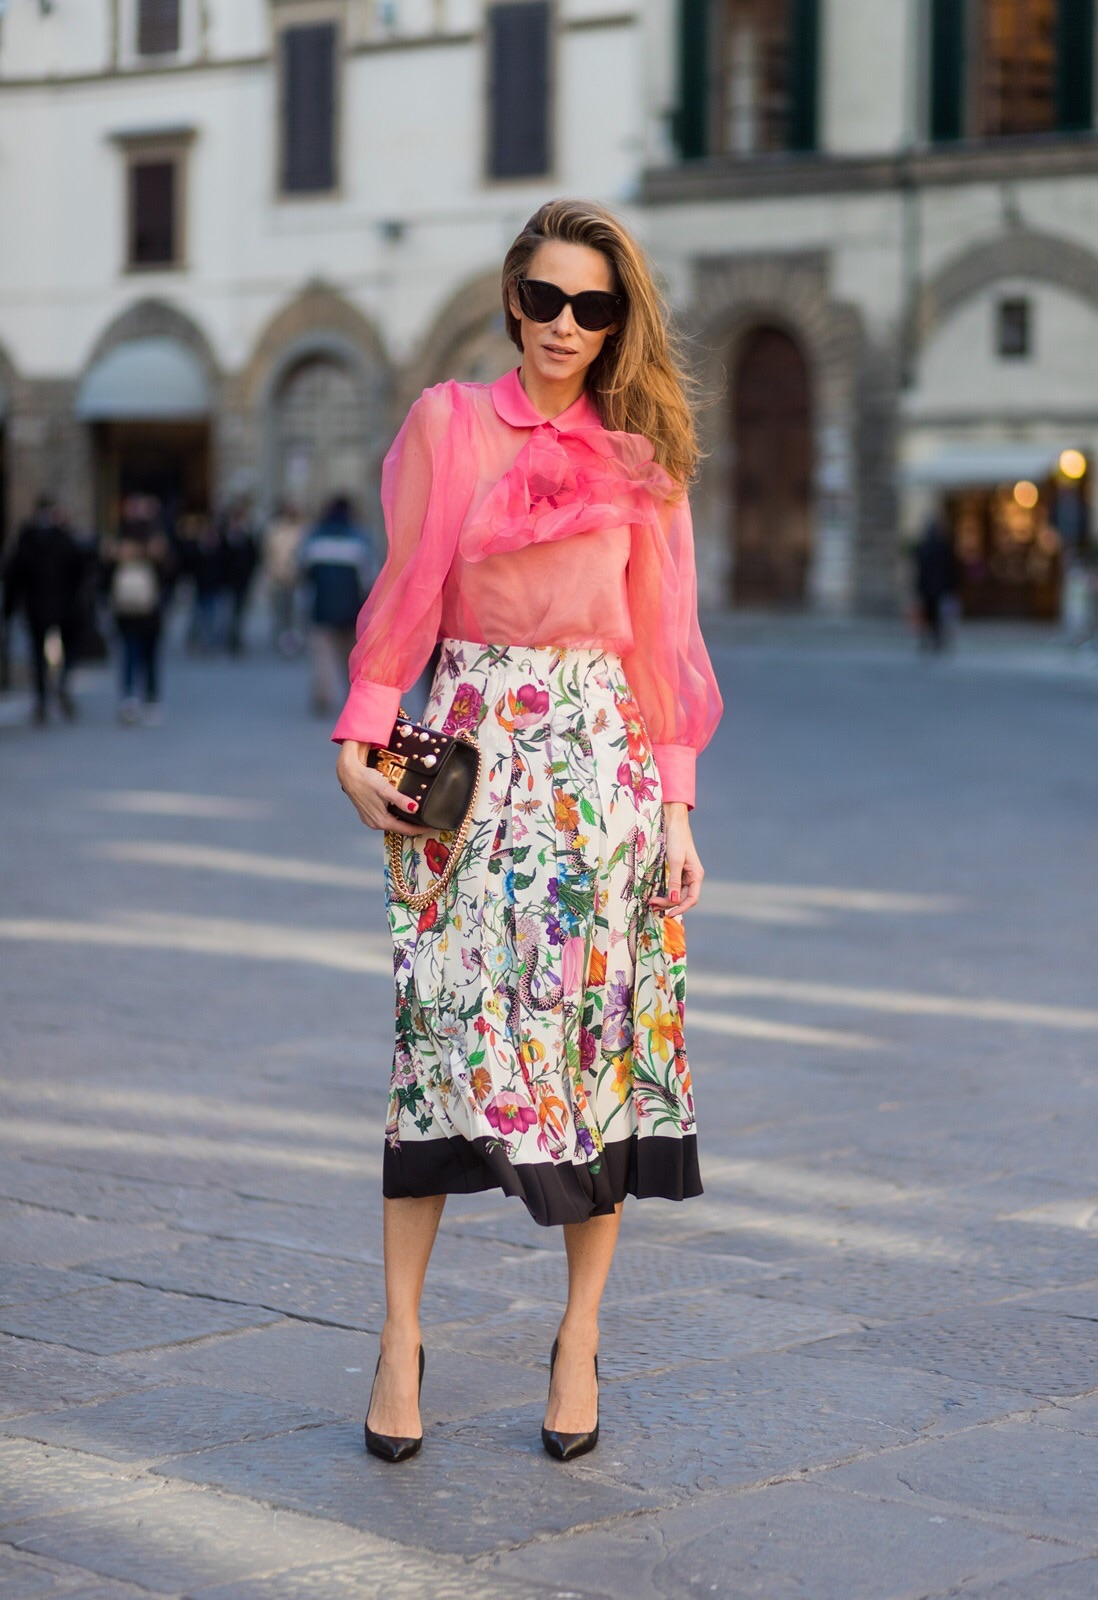 Florence Italy January 11 German Fashion Blogger And Model Alexandra Lapp Is Wearing